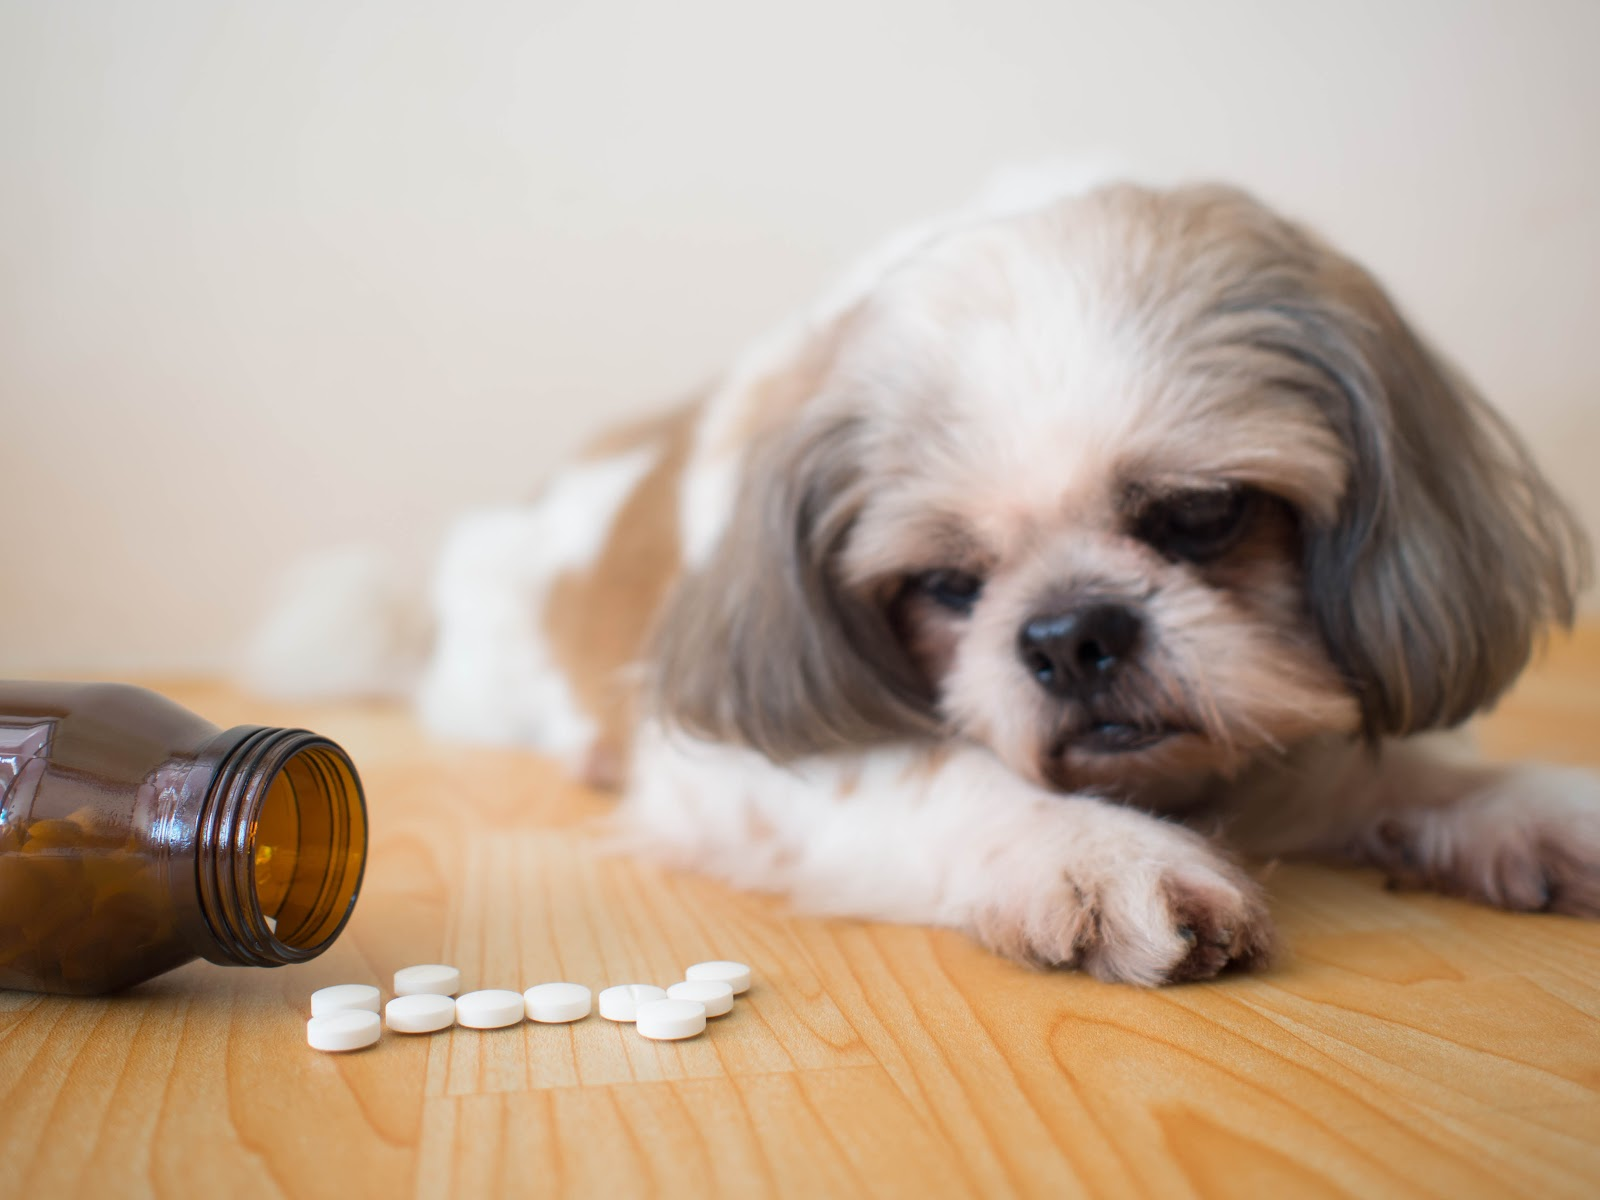 A dog looking at an open pill bottle trazodone